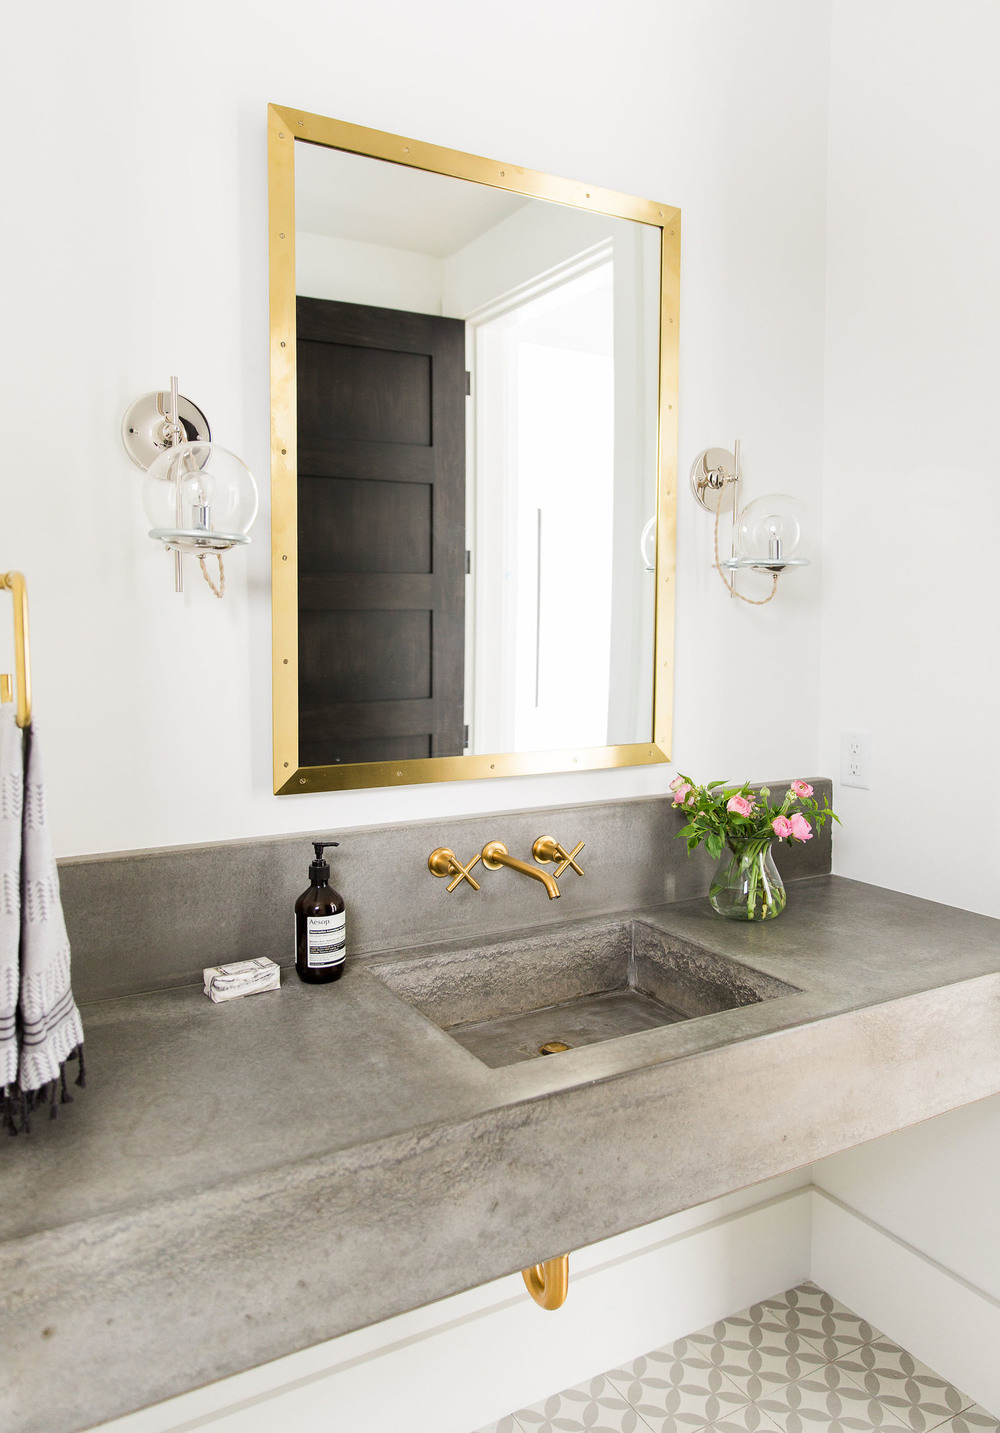 Gold framed mirror above bathroom sink